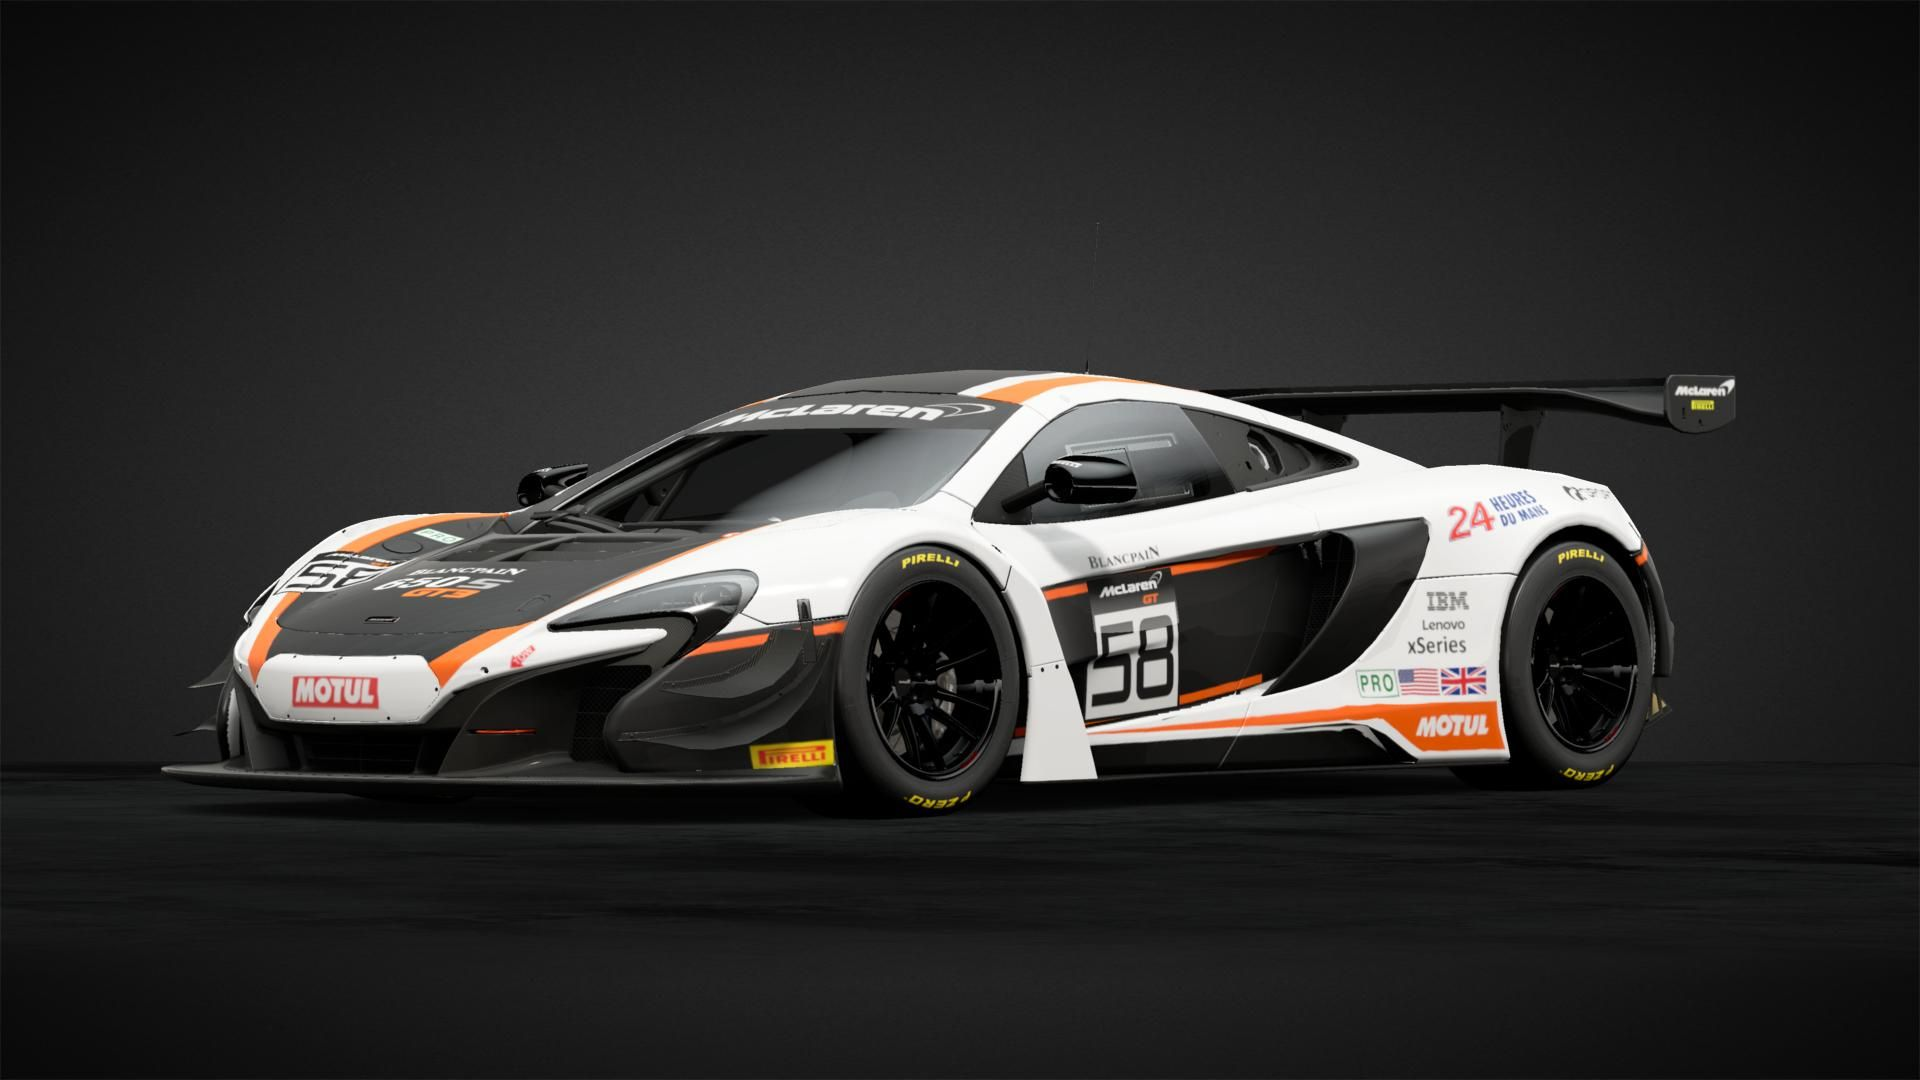 Mclaren Baco0974 Tribute B Car Livery By Gearmeister Community Gran Turismo Sport Car Mclaren Sports